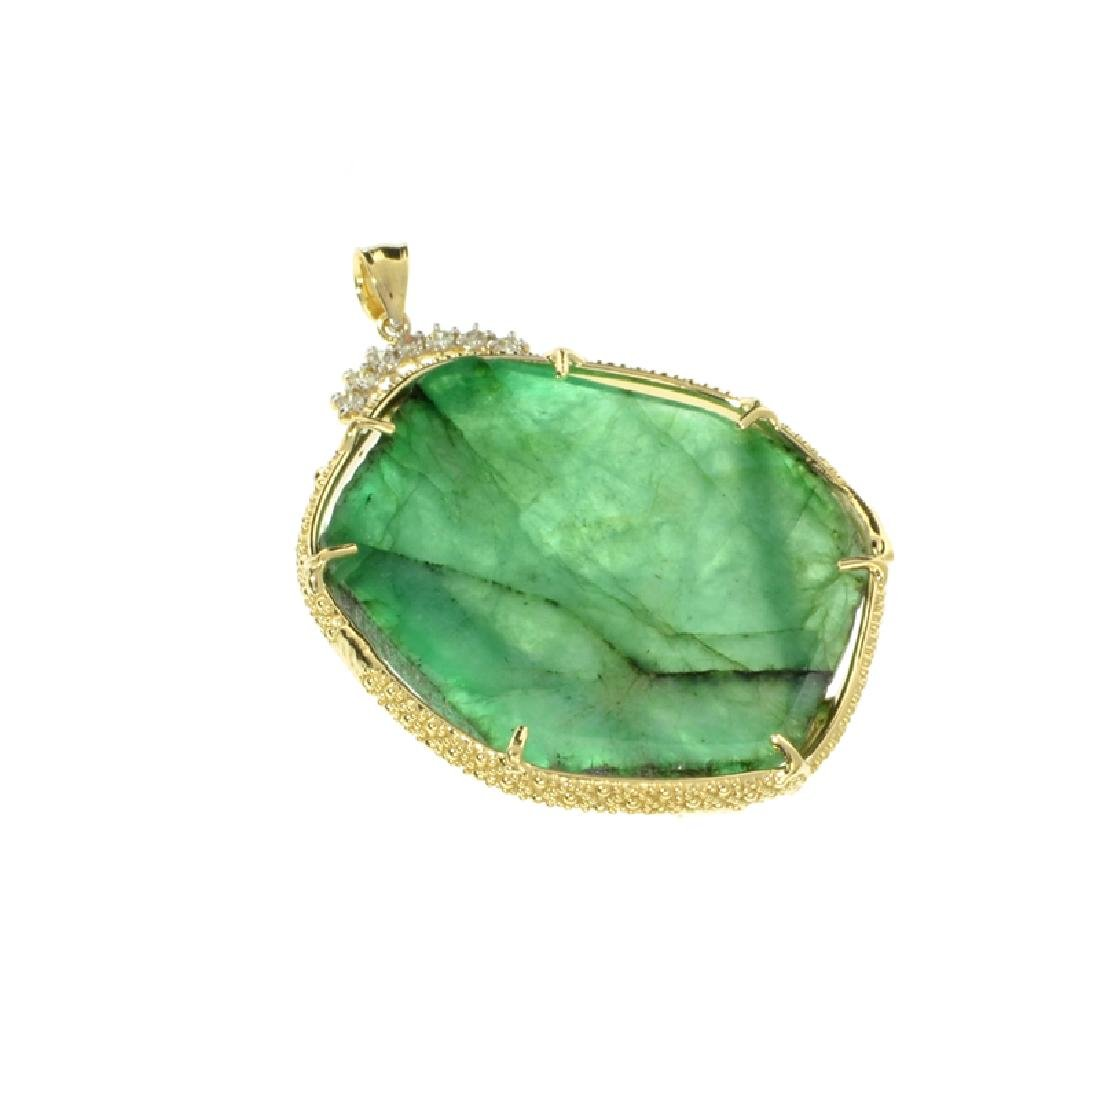 Fine Jewelry 14 KT Gold, 29.33CT Rare Natural Form